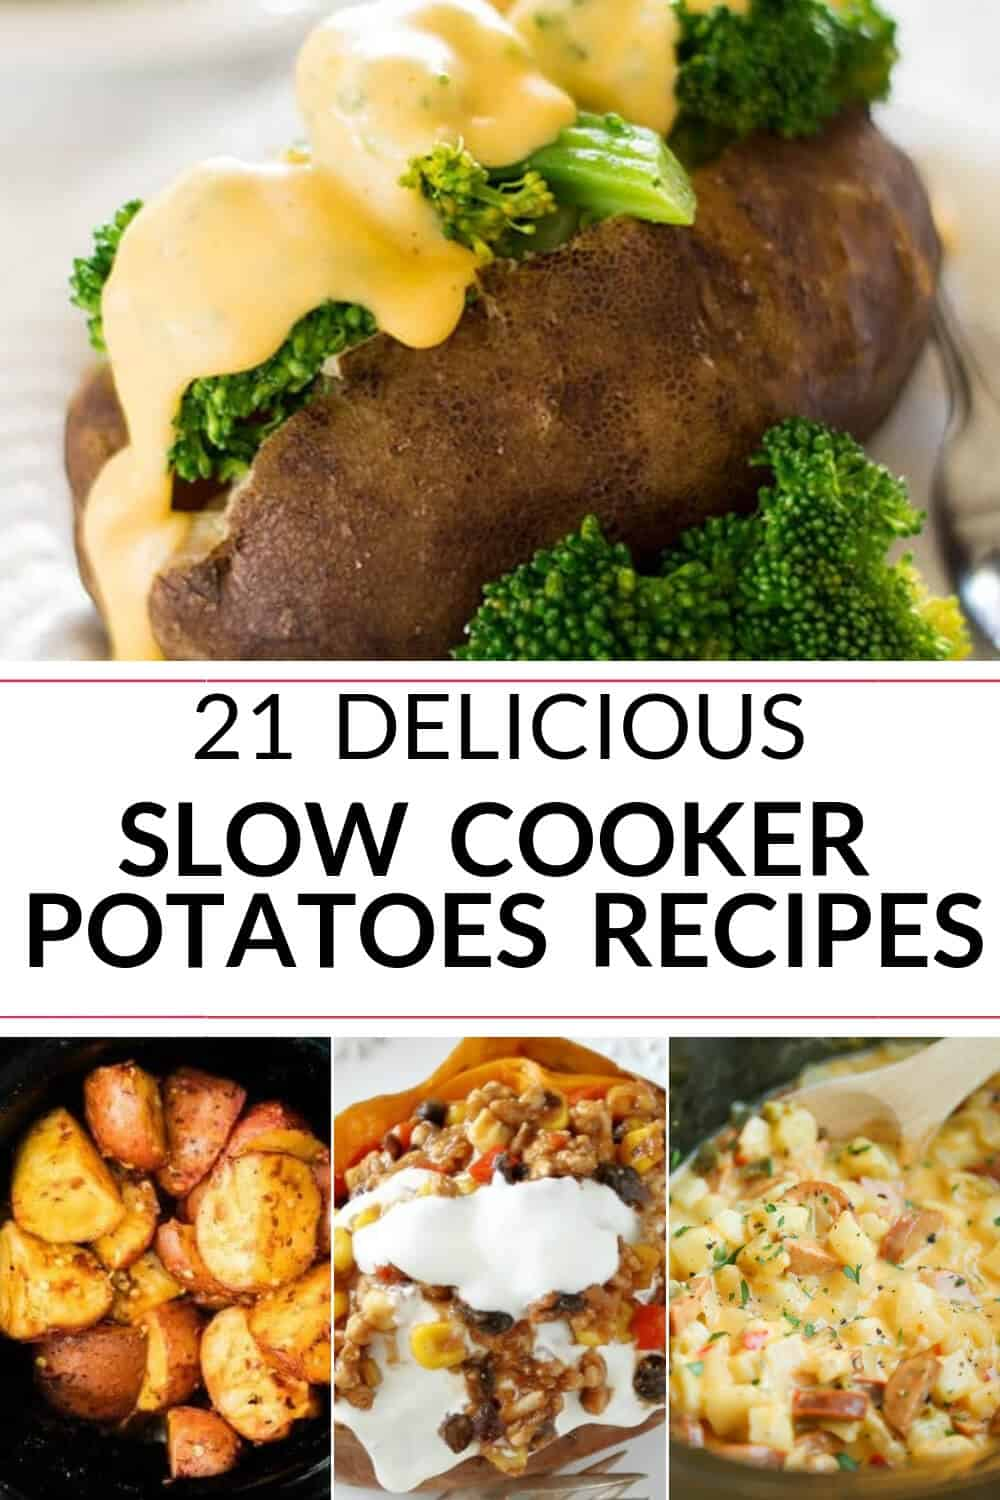 A collection of slow cooker potatoes